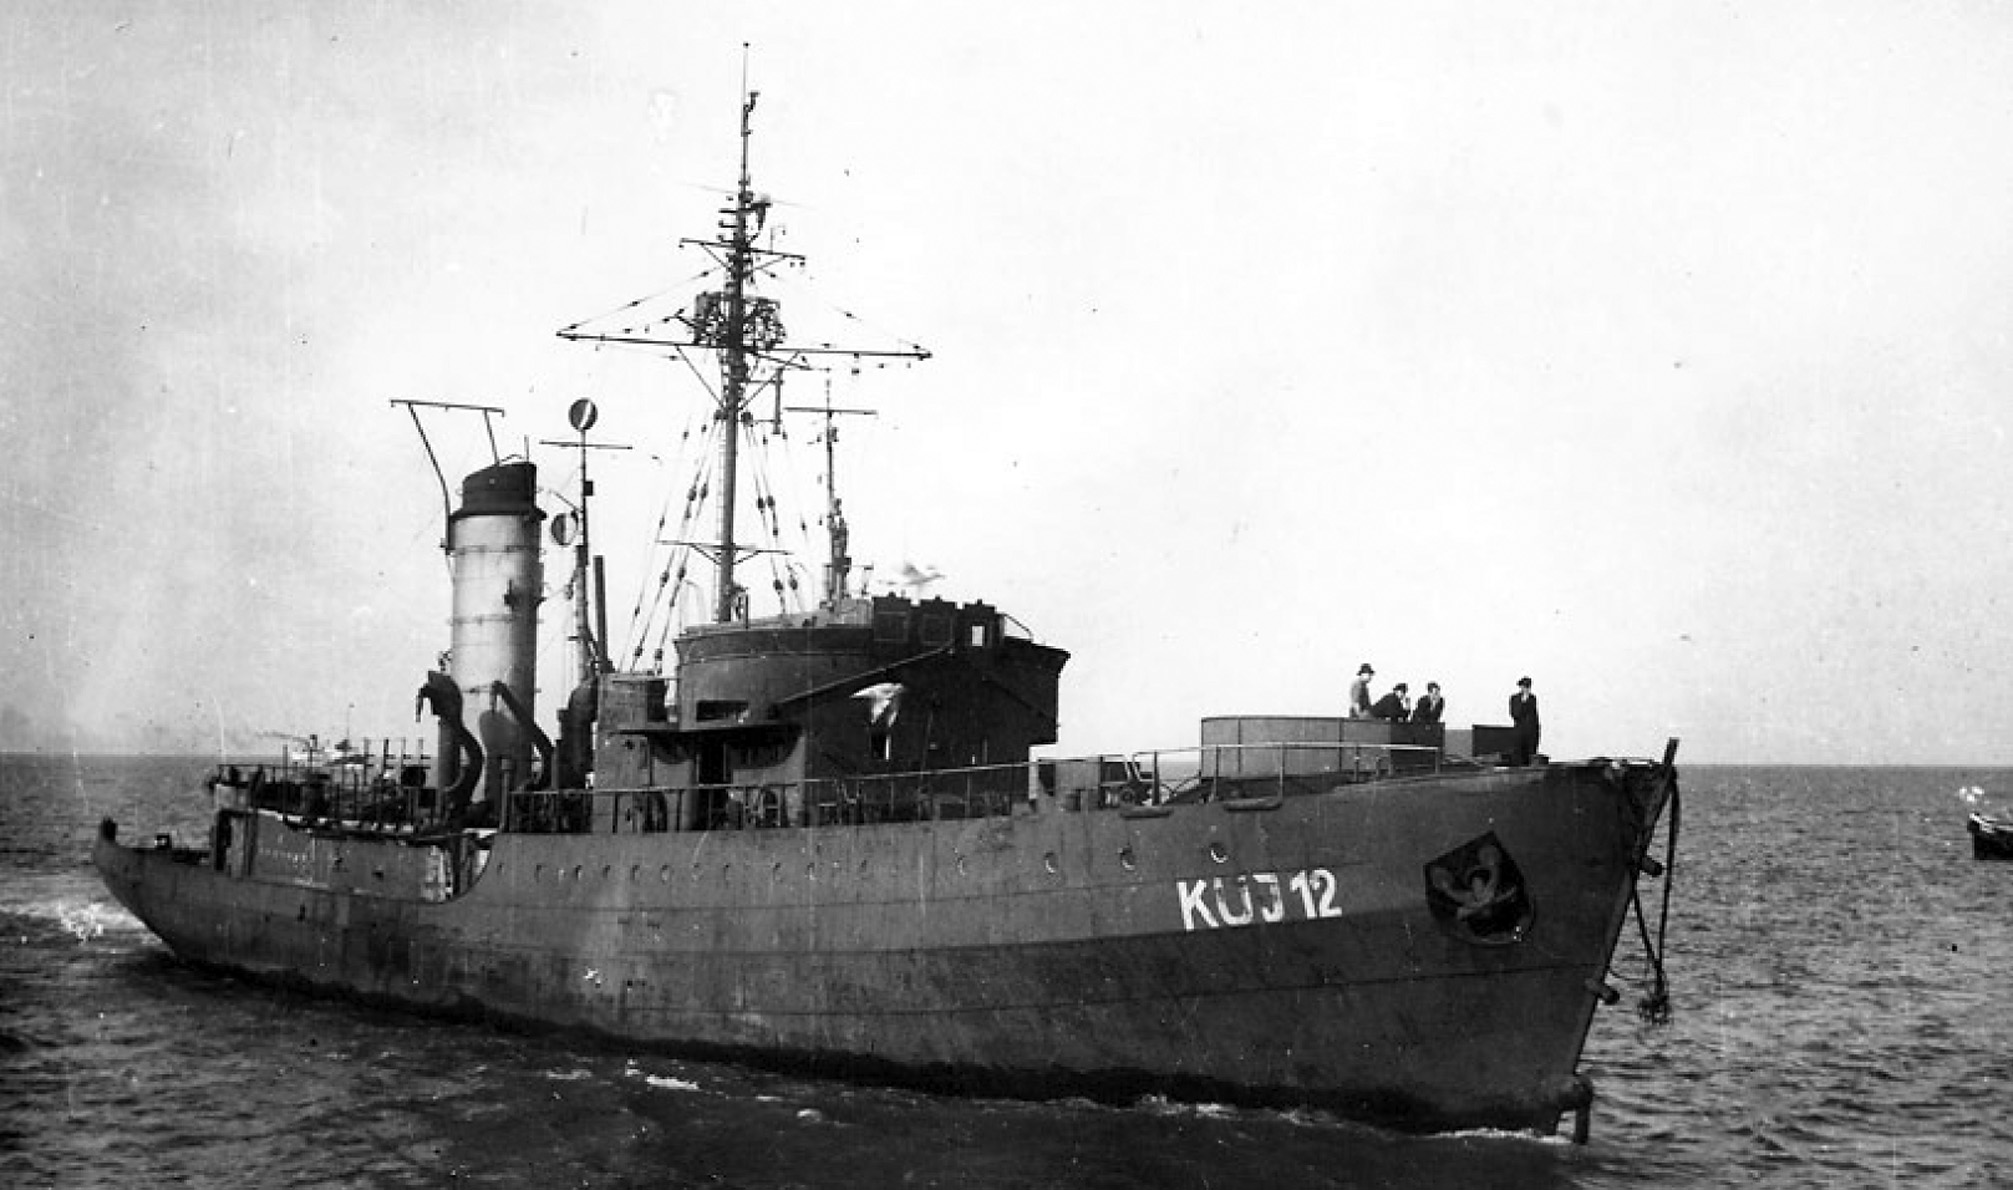 KUj-12 serving as minesweeper in GMSA.jpg